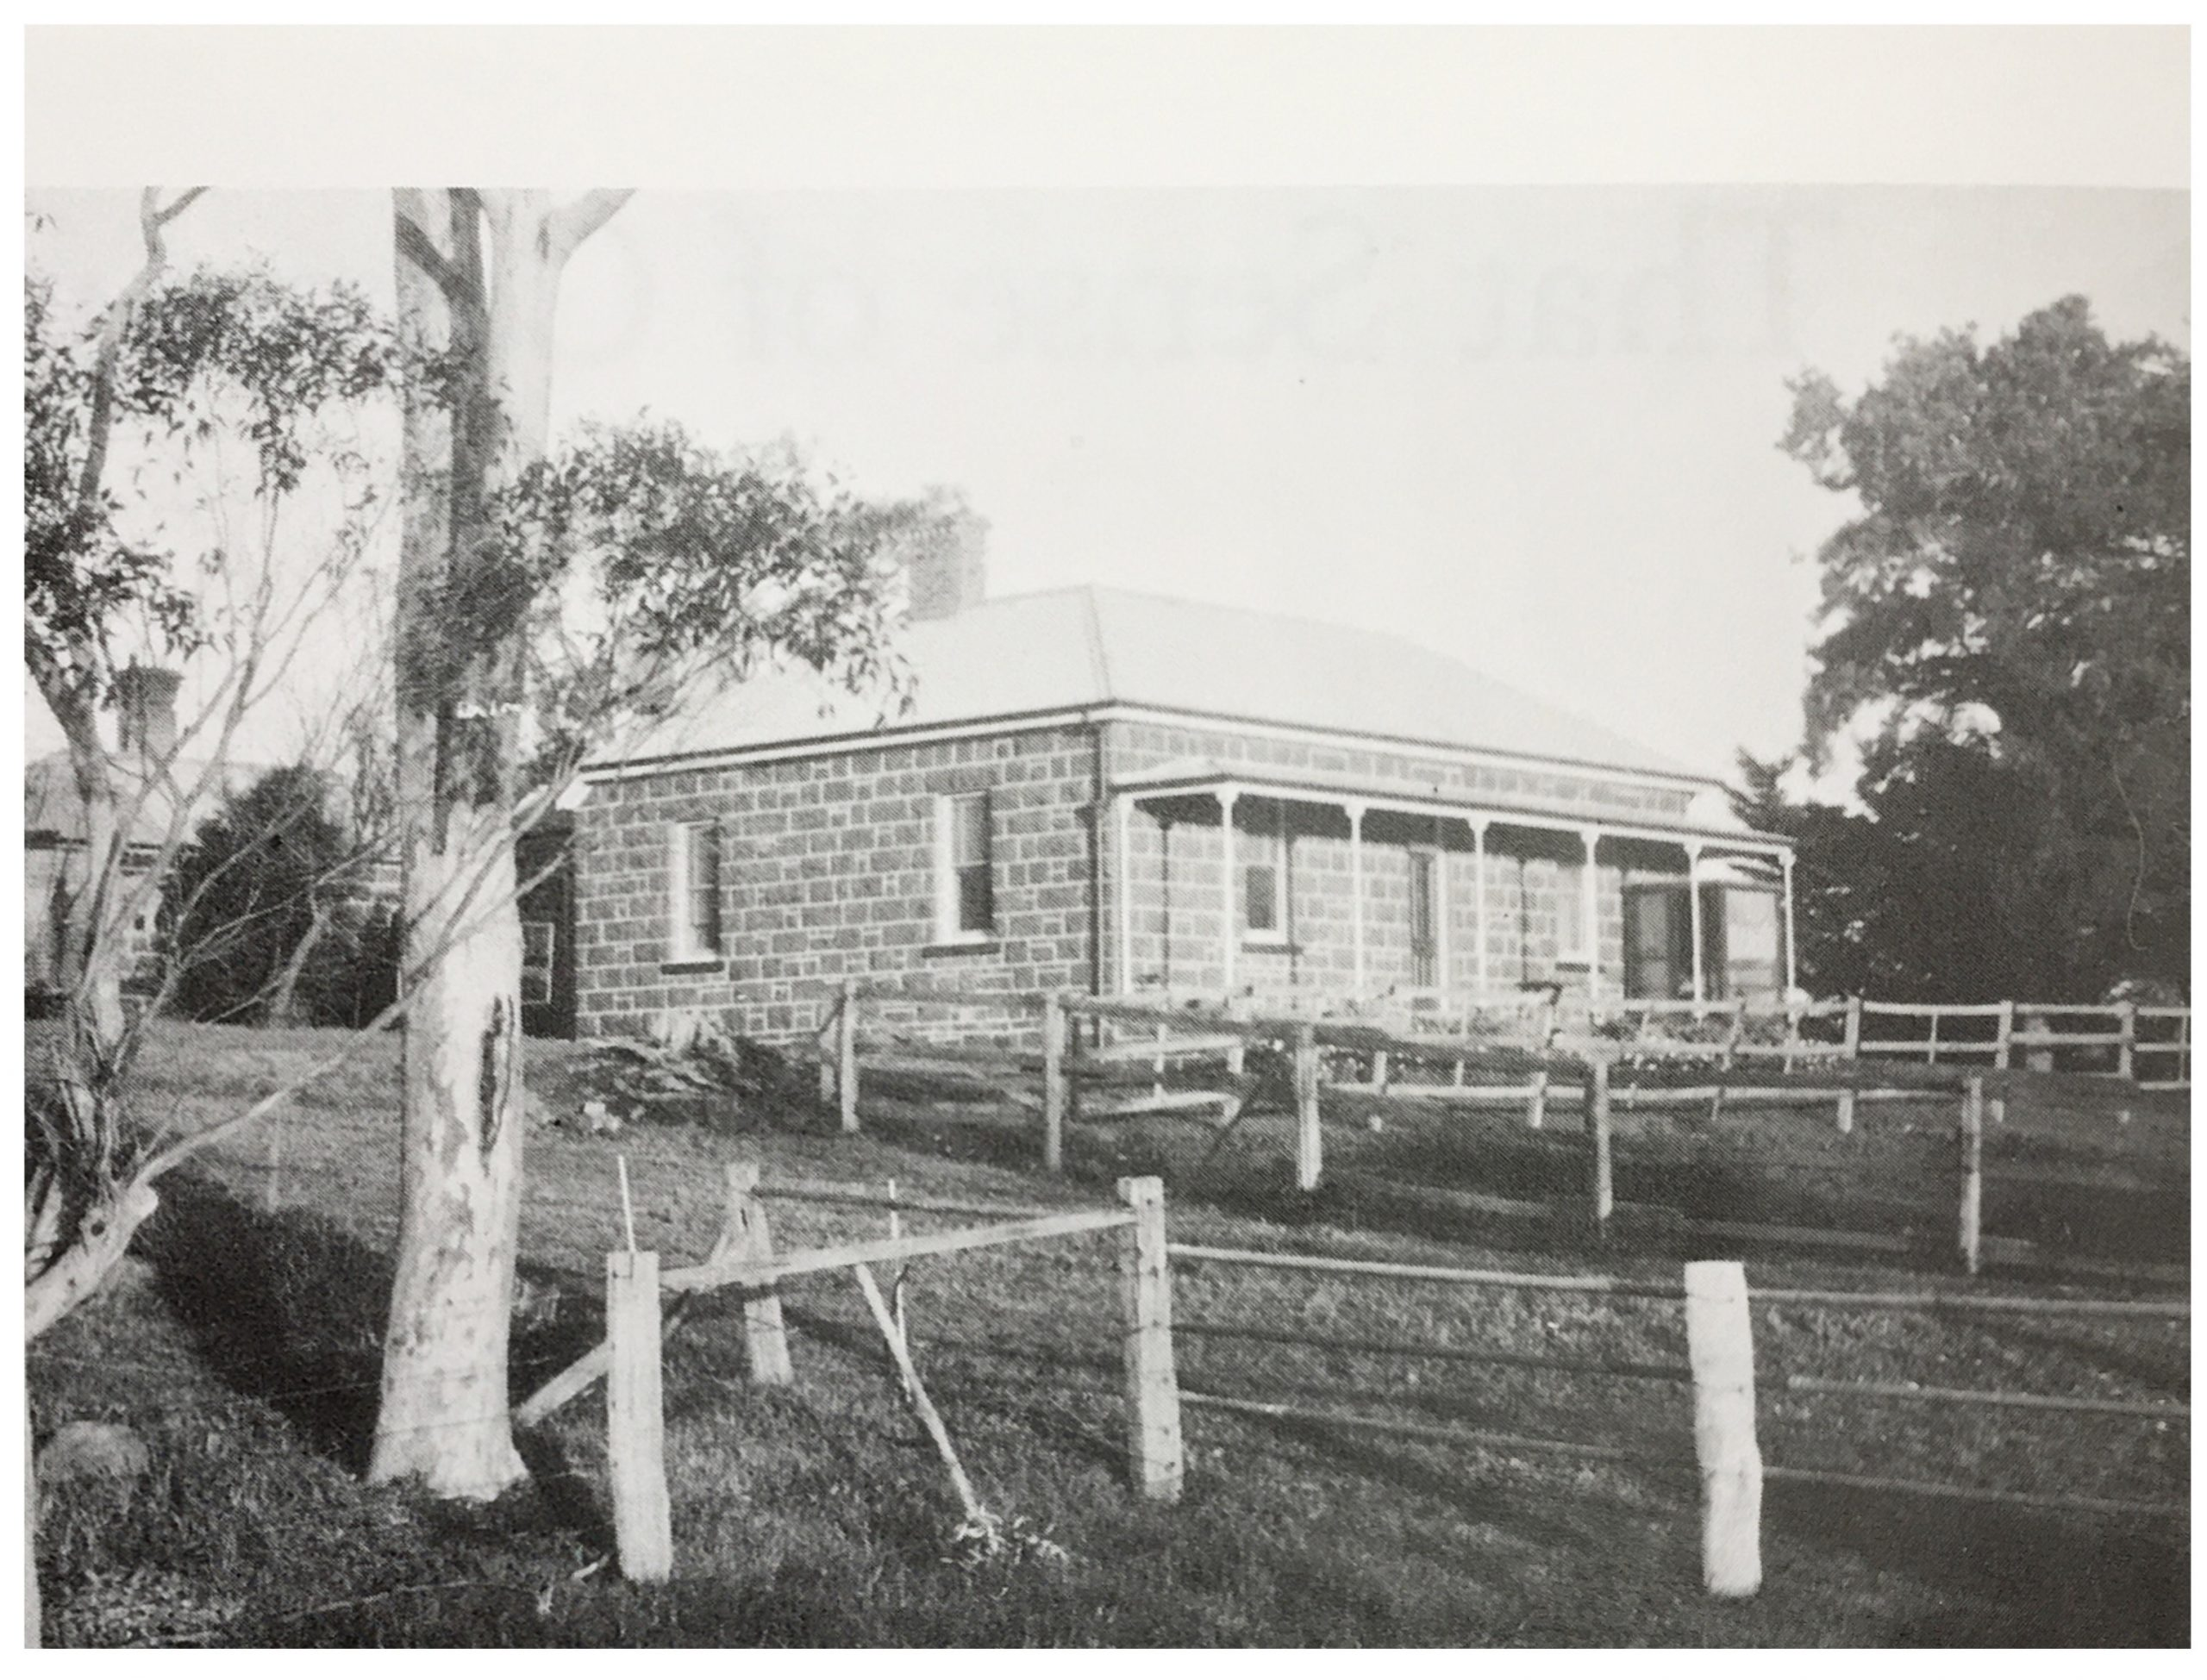 'Fenwick' Homestead, Yan Yean, by Bruce G. Draper, 1970s.  This fine bluestone house is typical of the area and was constructed during the 1860s and 1870s using bluestone blocks cut on the site.  It gives an idea of how homesteads such as 'Craigie Lee' looked prior to being abandoned in recent times